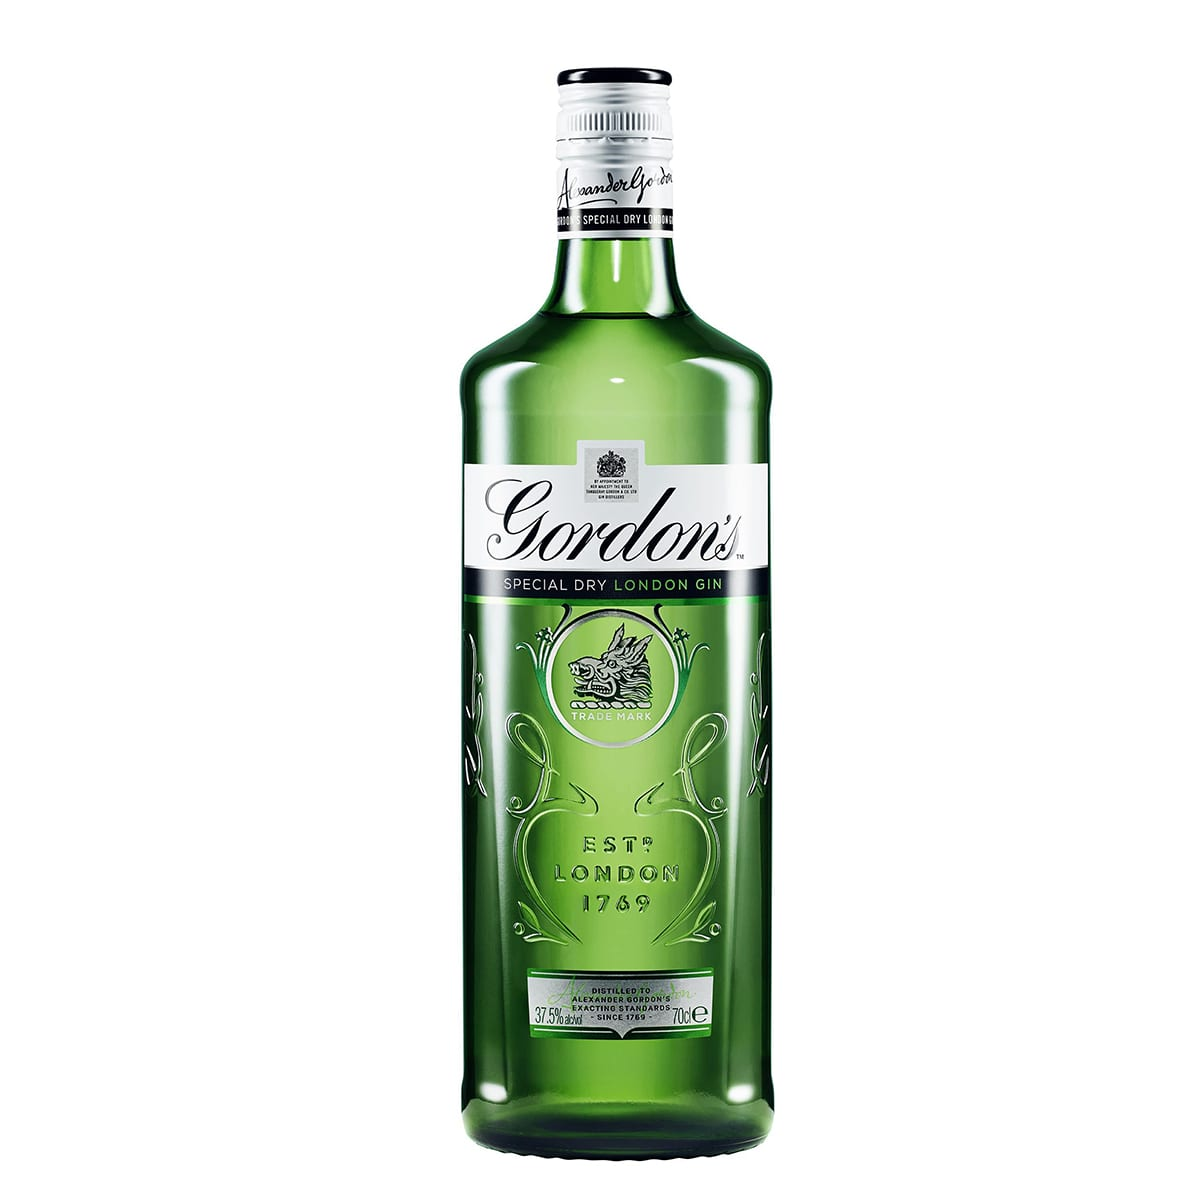 Gordon's London Dry Gin